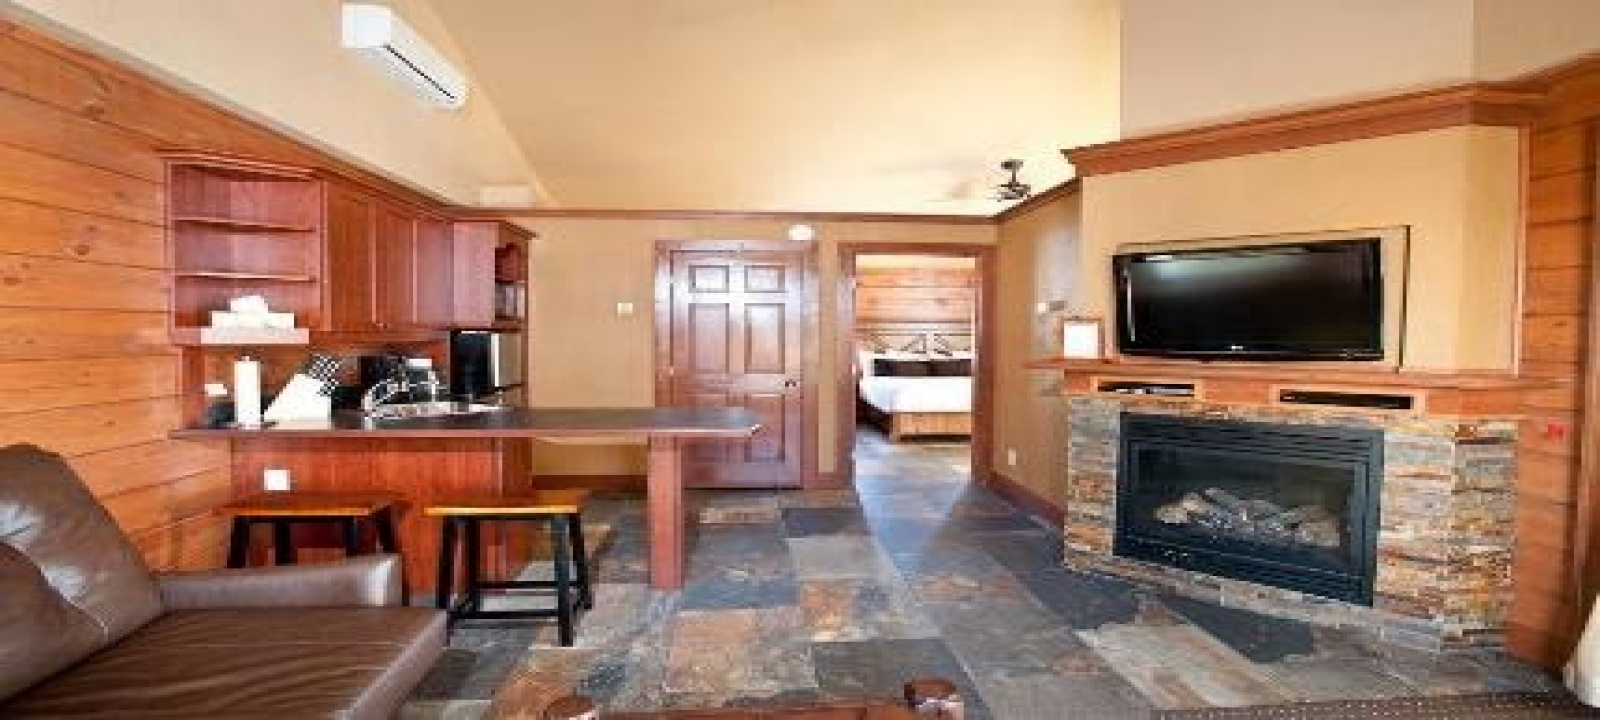 Duhamel-Ouest, Canada, ,North American Properties,For Sale,1061